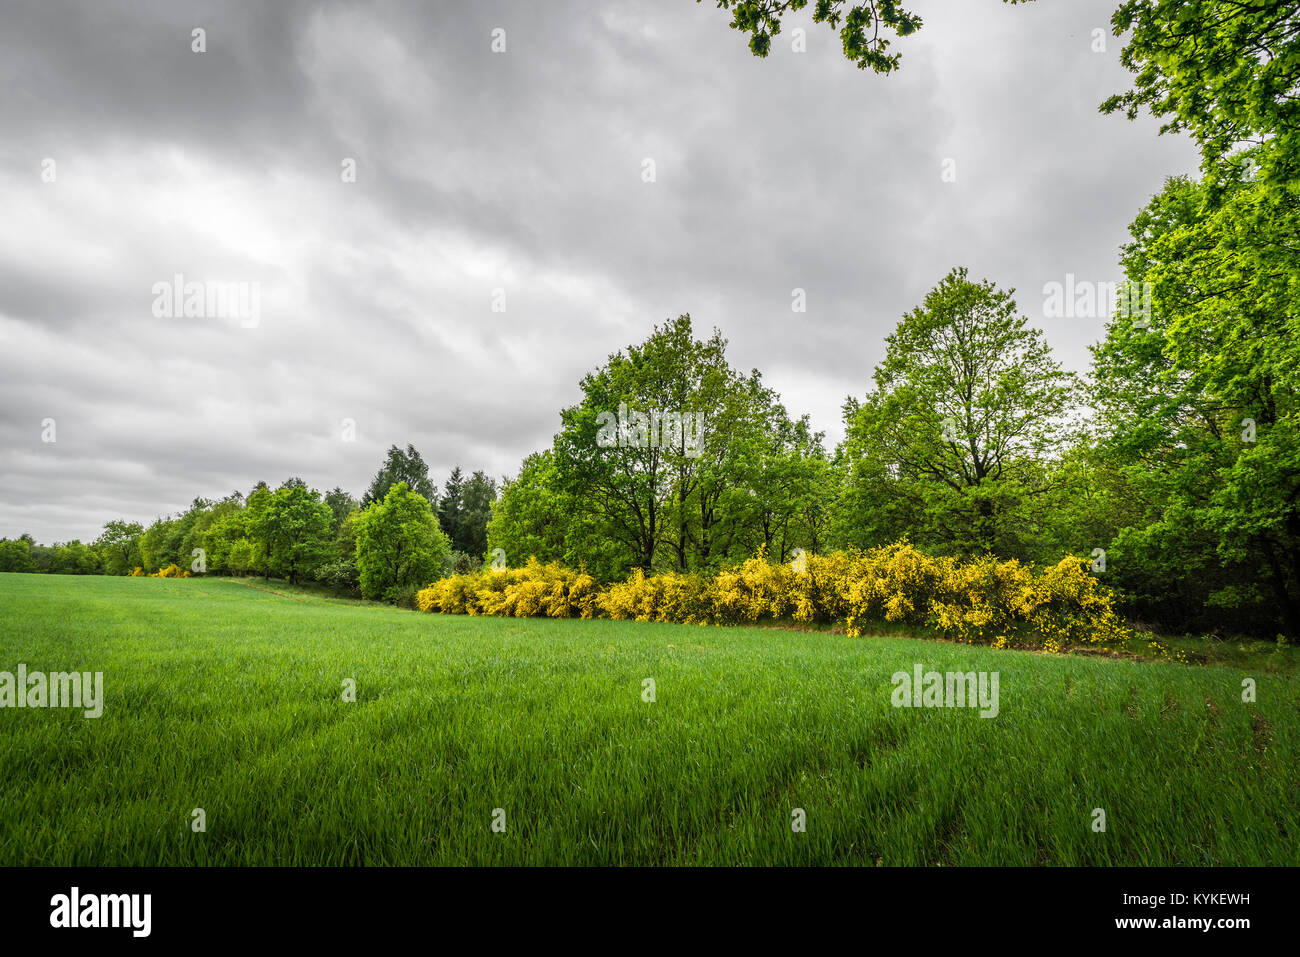 Cloudy weather over a rural field with broom bushes and trees in a countryside - Stock Image